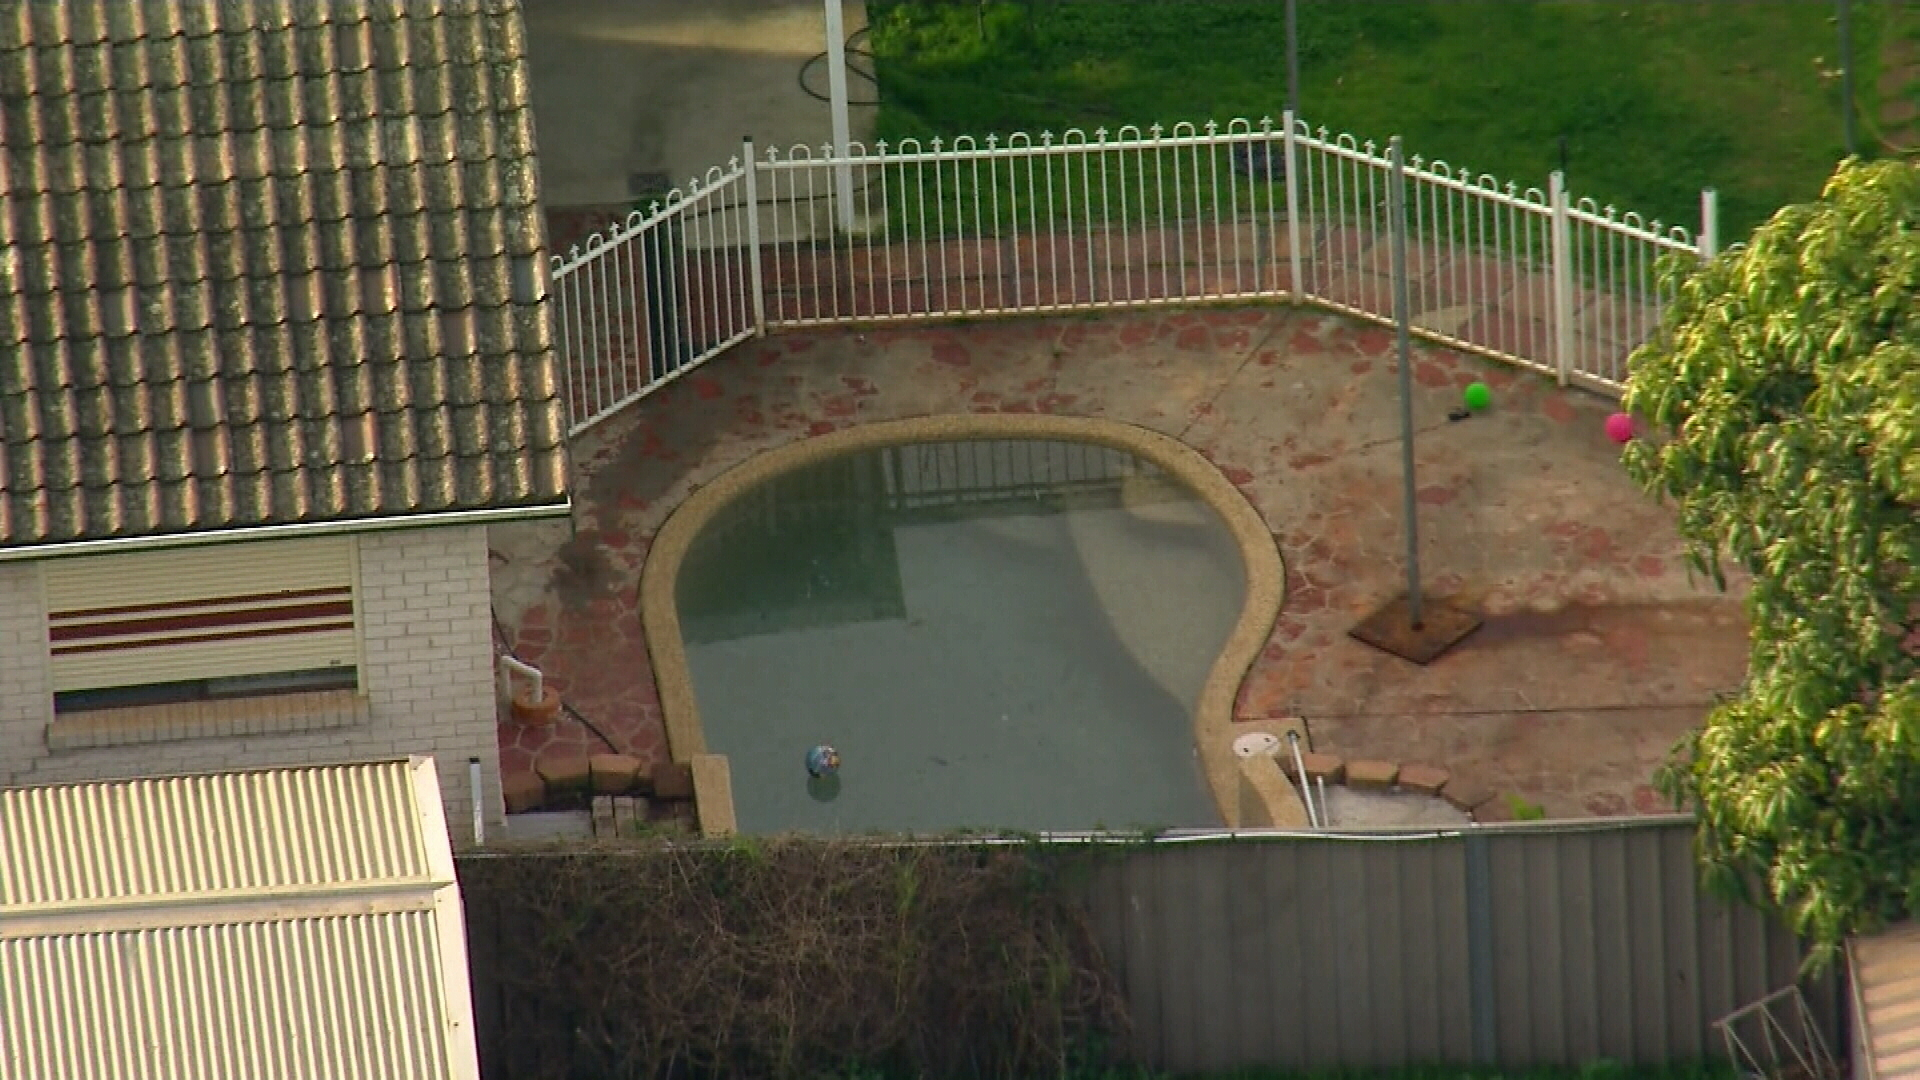 Destiny Shrief and Osman El Achrafe were pulled from this pool last month.